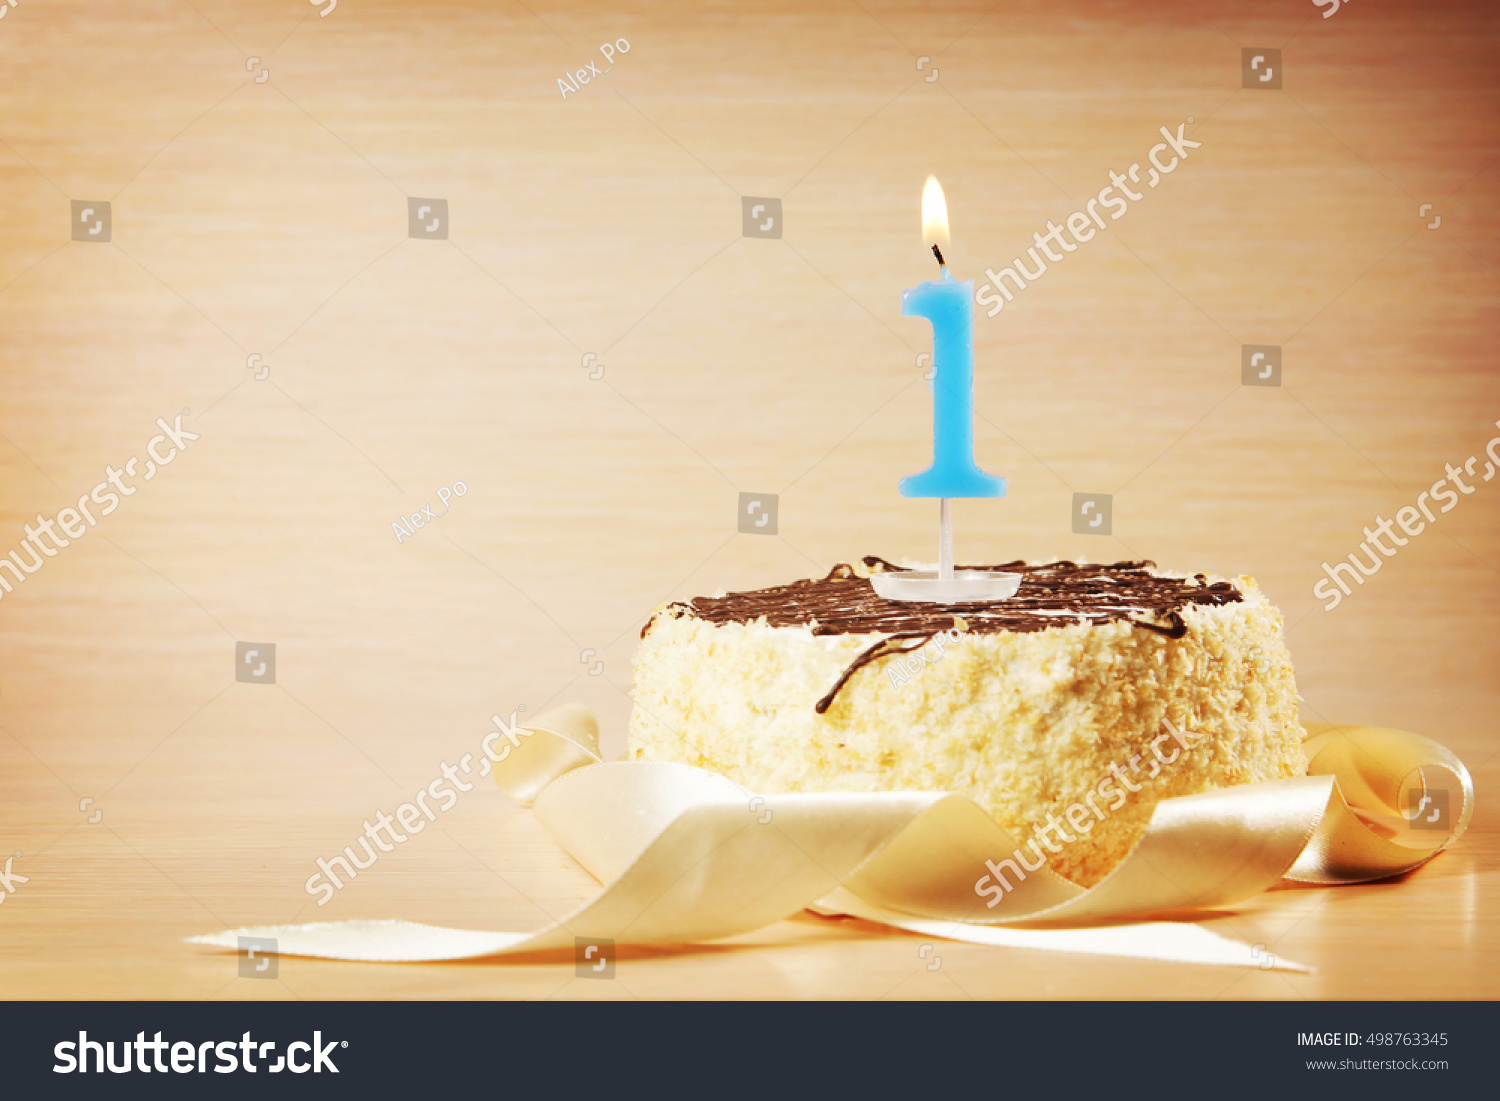 Birthday Cake With One Decorative Burning Candle Against Beige